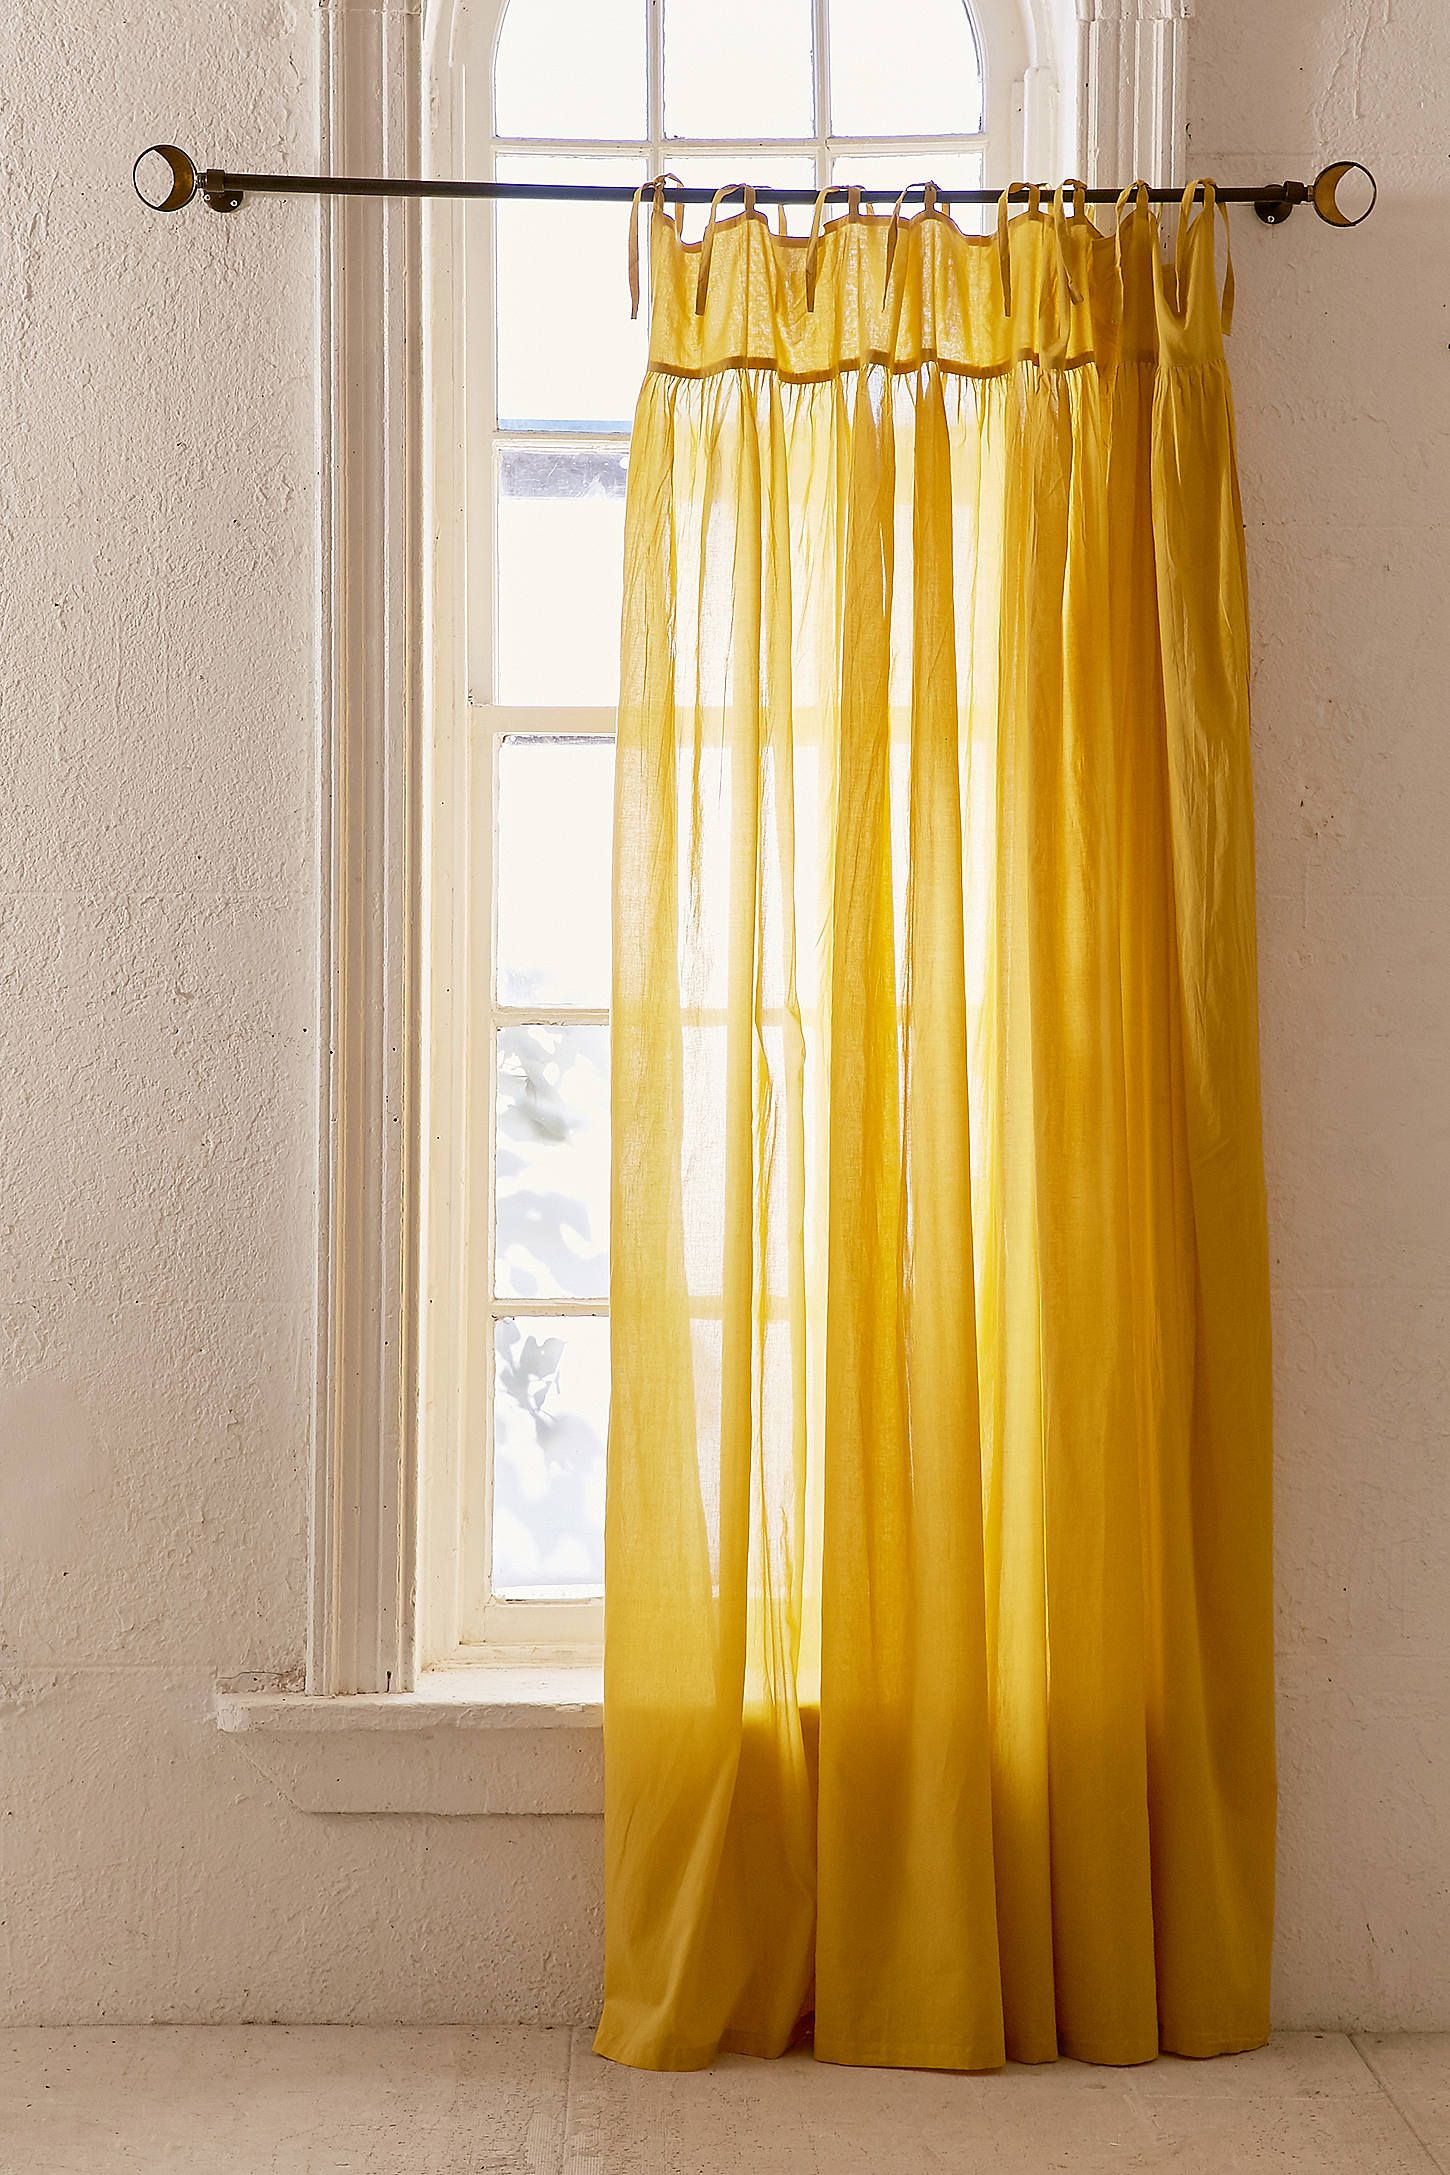 Gathered curtains - Shop The Plum Bow Gathered Voile Curtain And More Urban Outfitters At Urban Outfitters